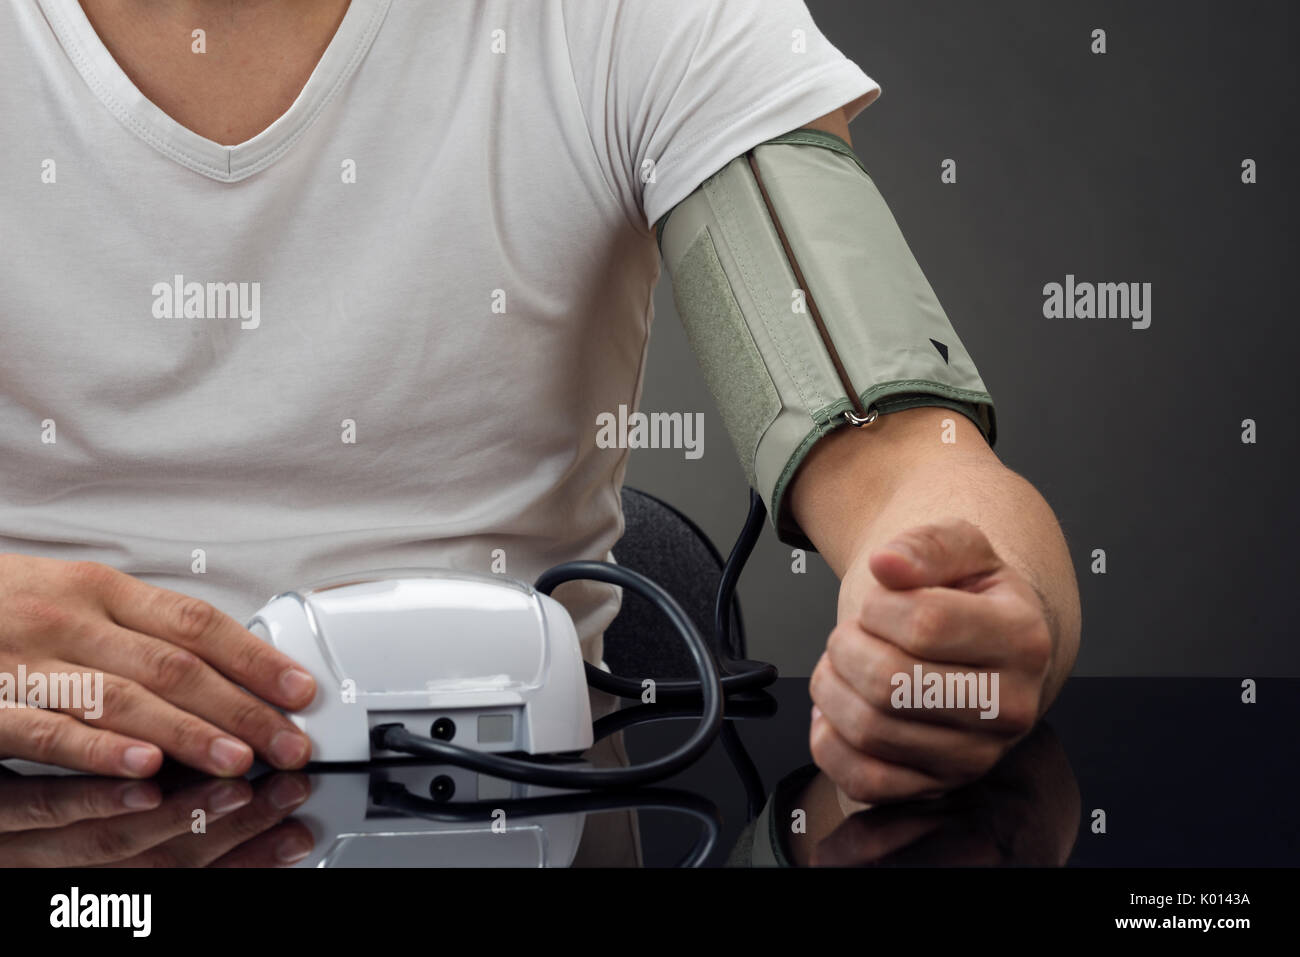 Midsection of man checking blood pressure at table against gray background - Stock Image